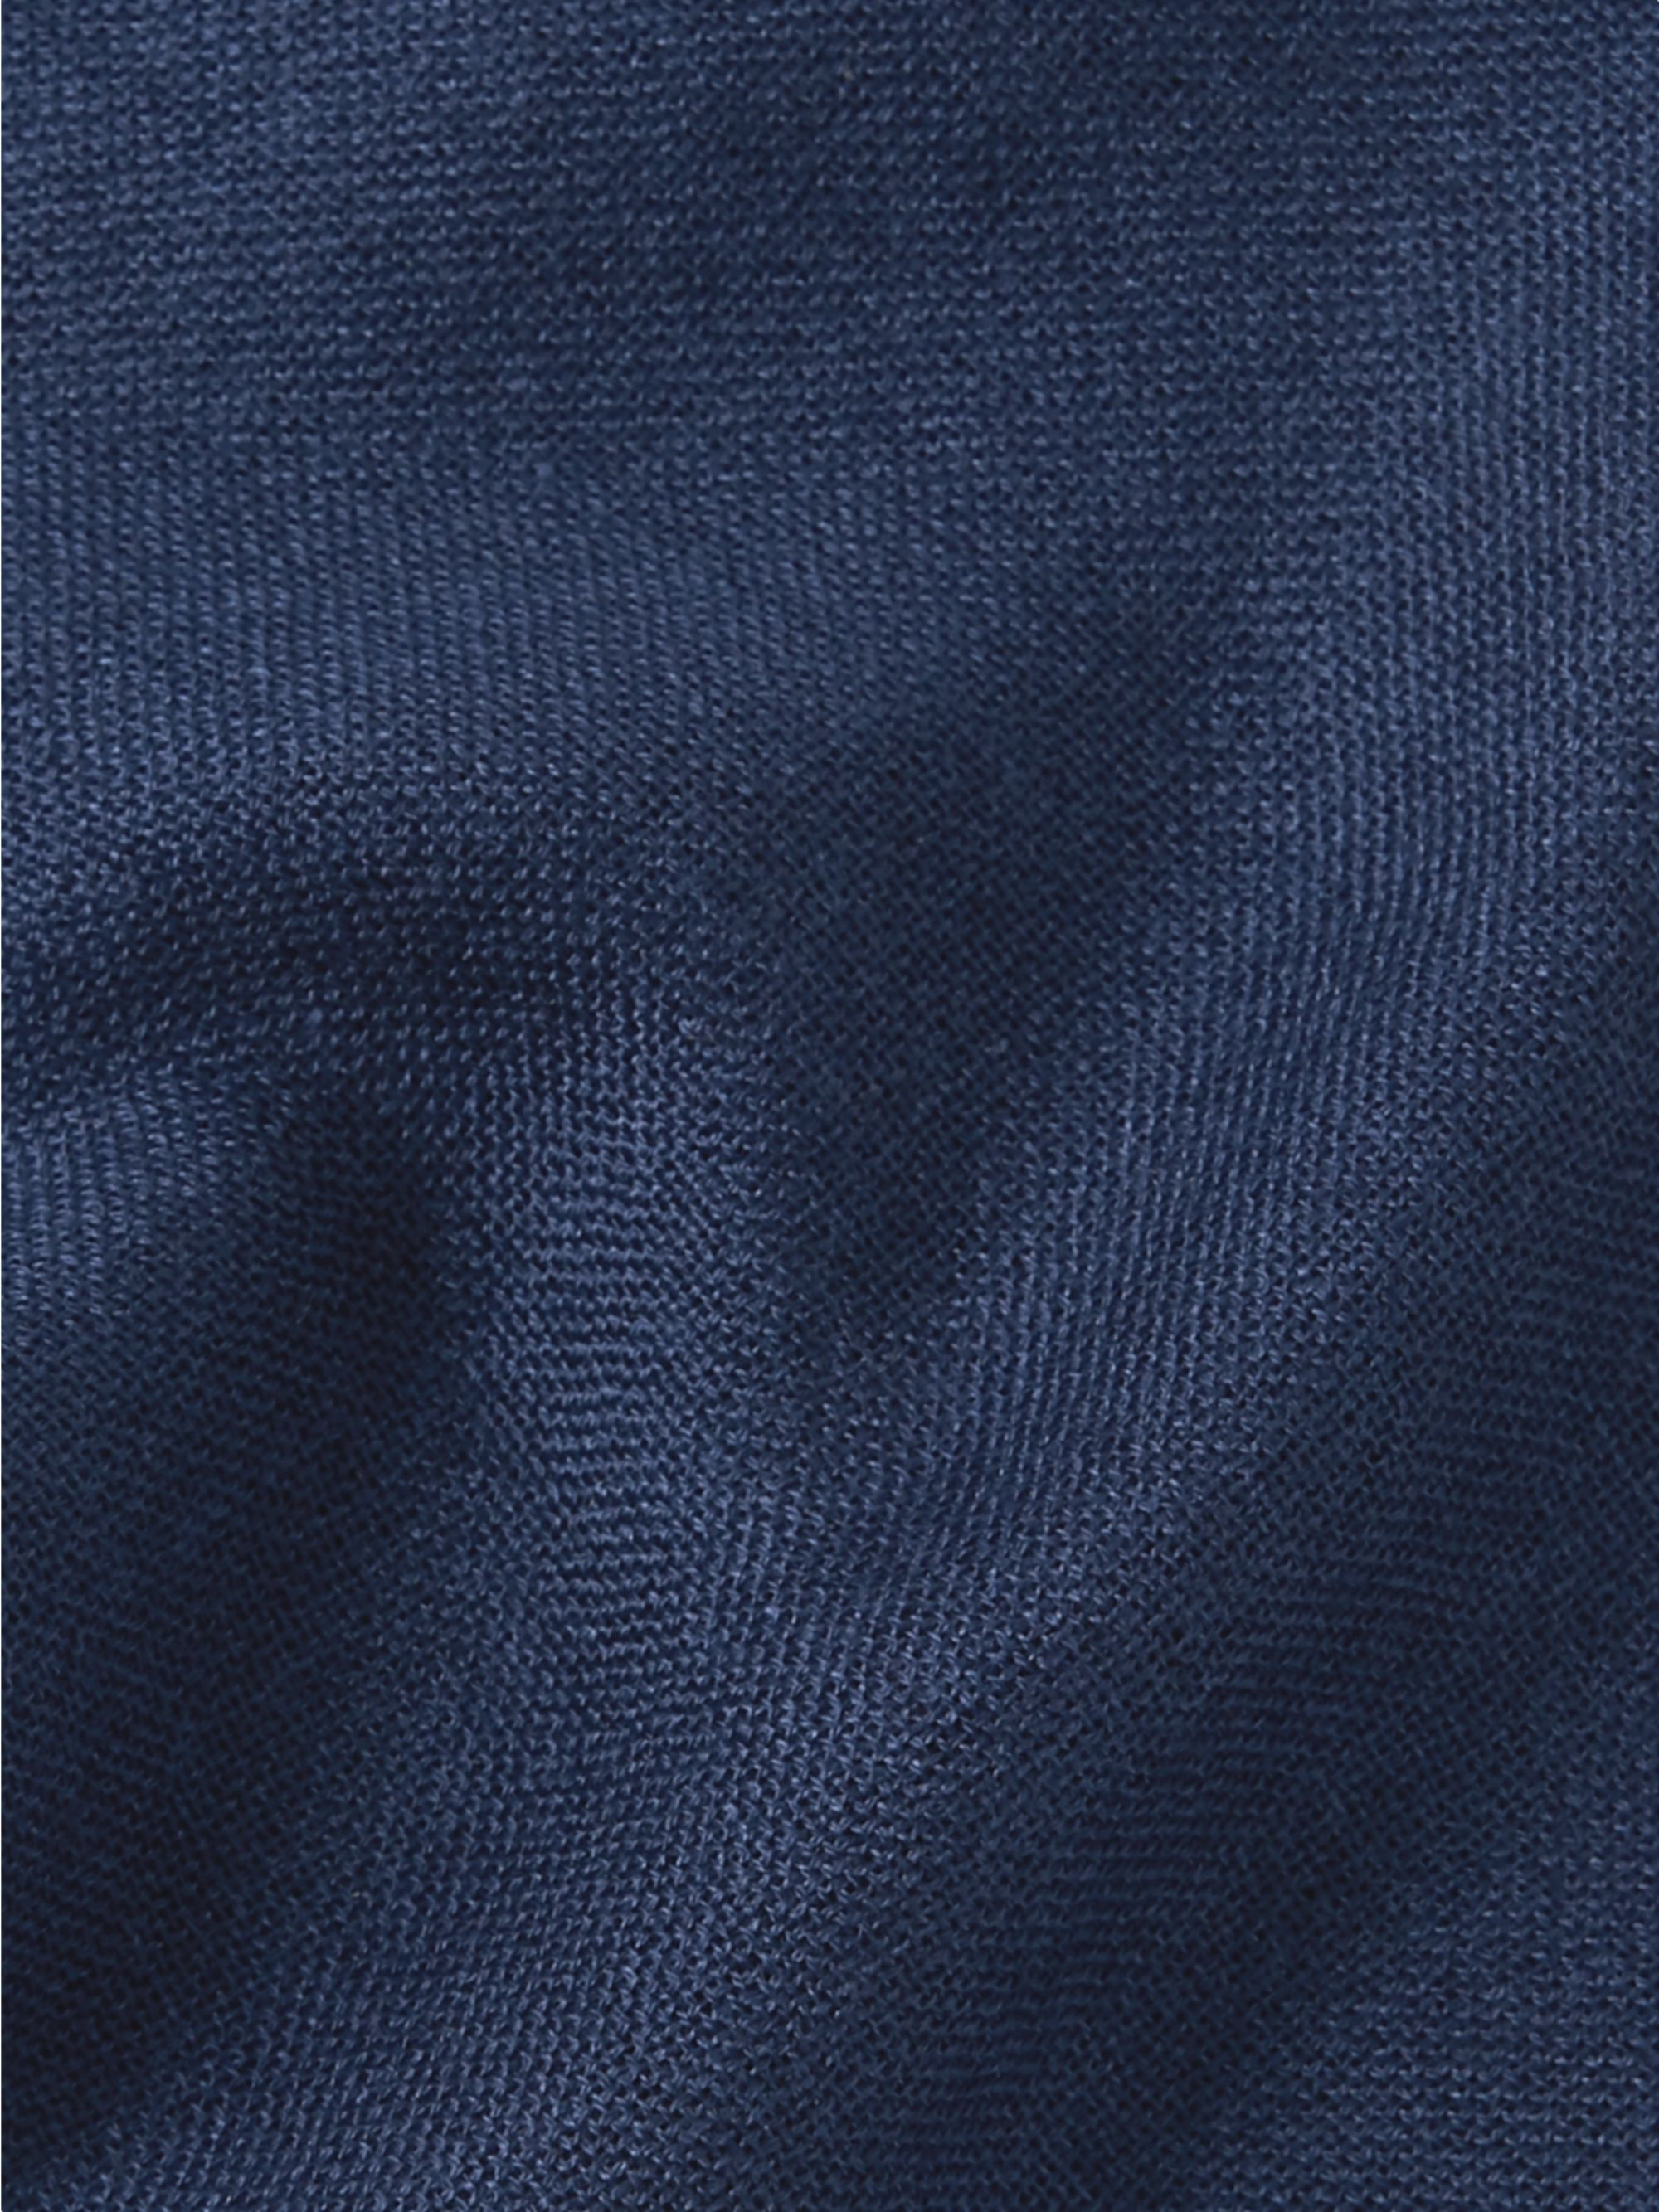 Loro Piana Fringed Cashmere and Silk-Blend Scarf